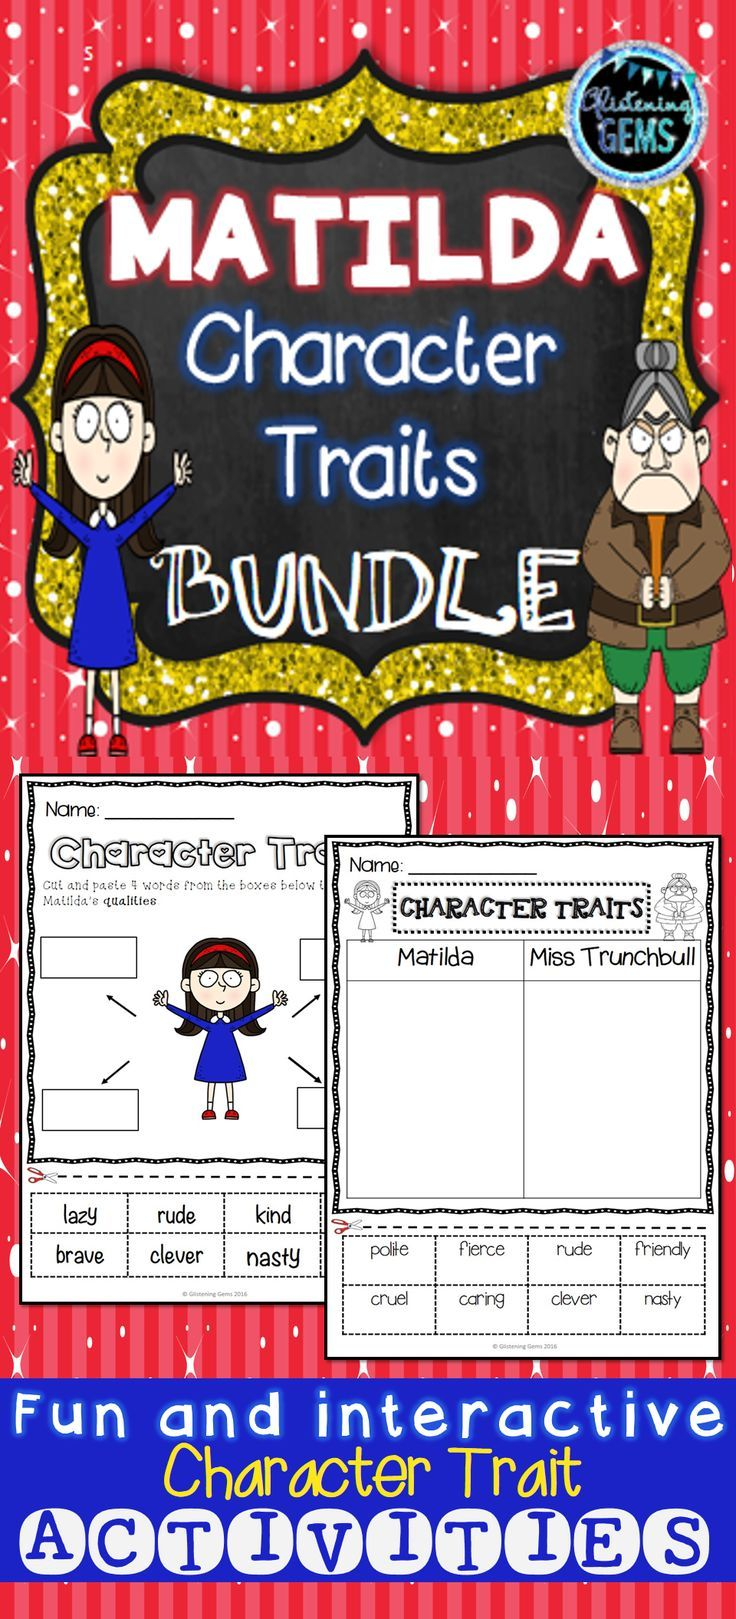 Matilda Character Traits Bundle includes a variety of fun character trait activities. Great resource to use as a book companion.